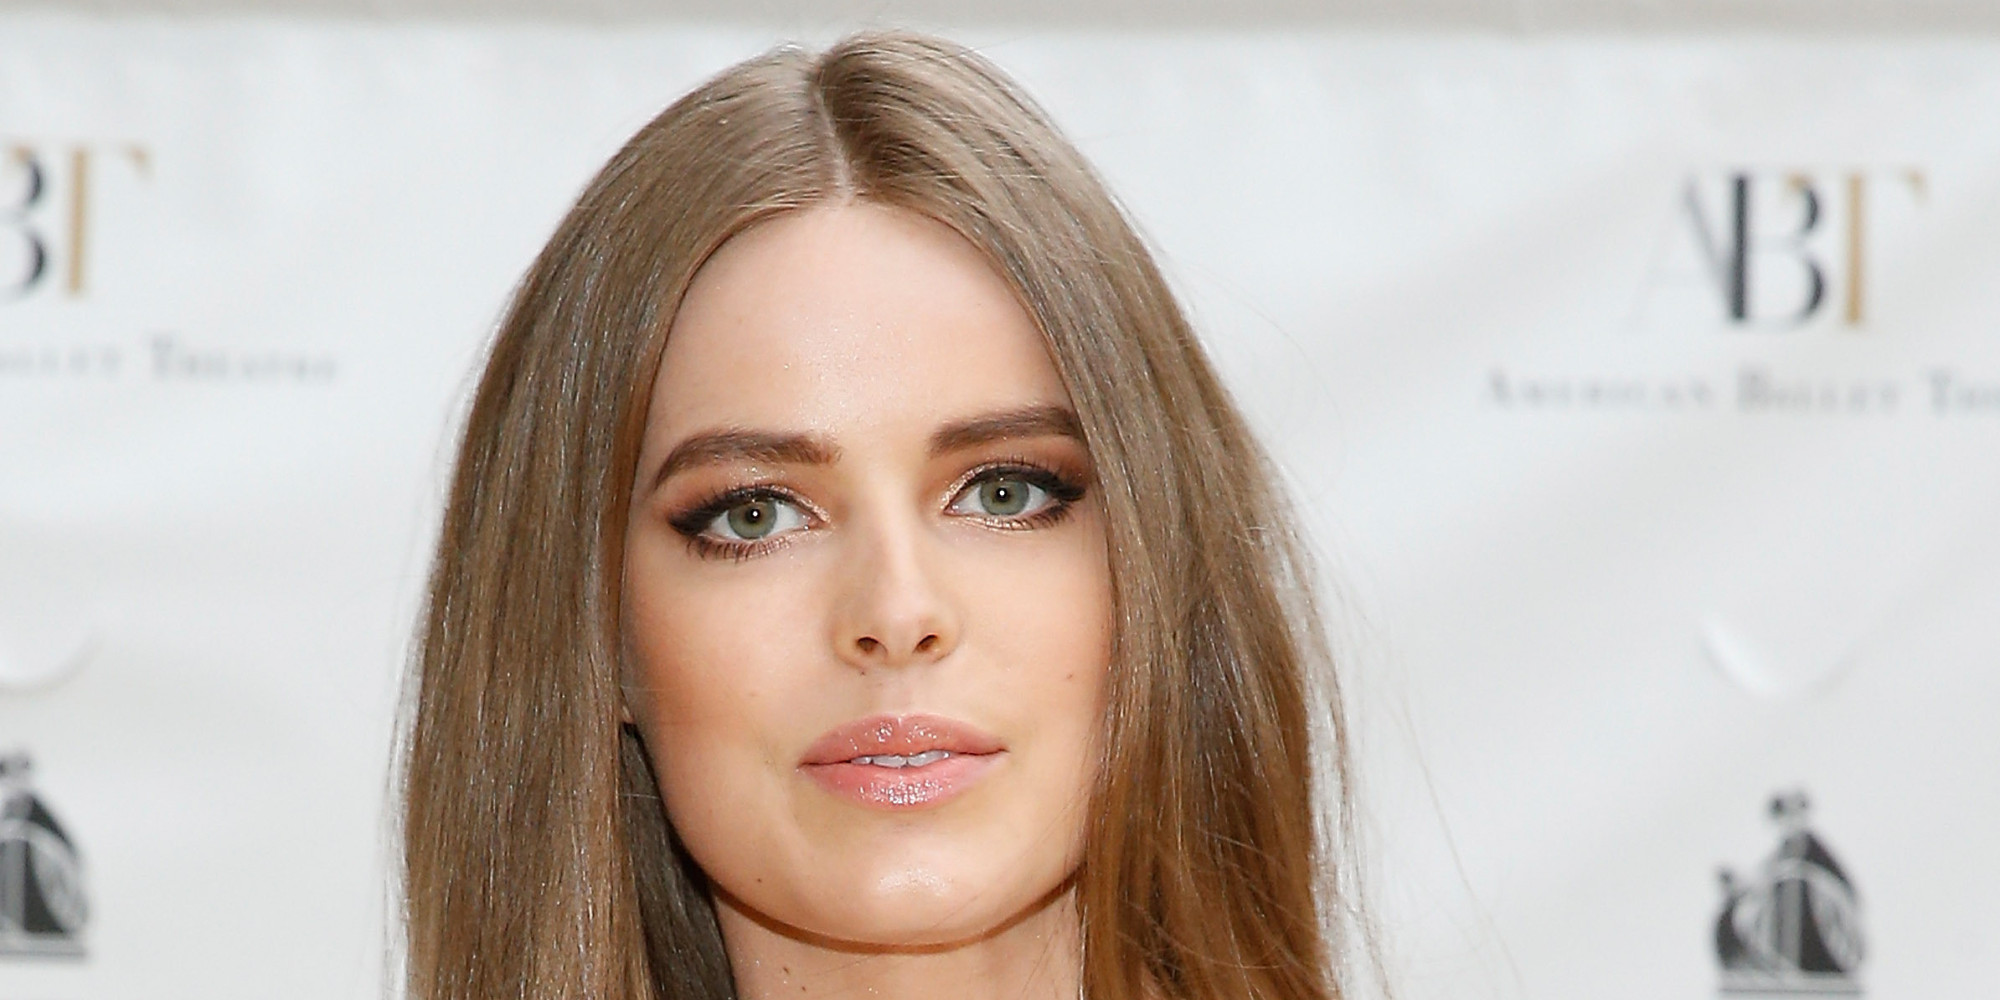 how tall is robyn lawley